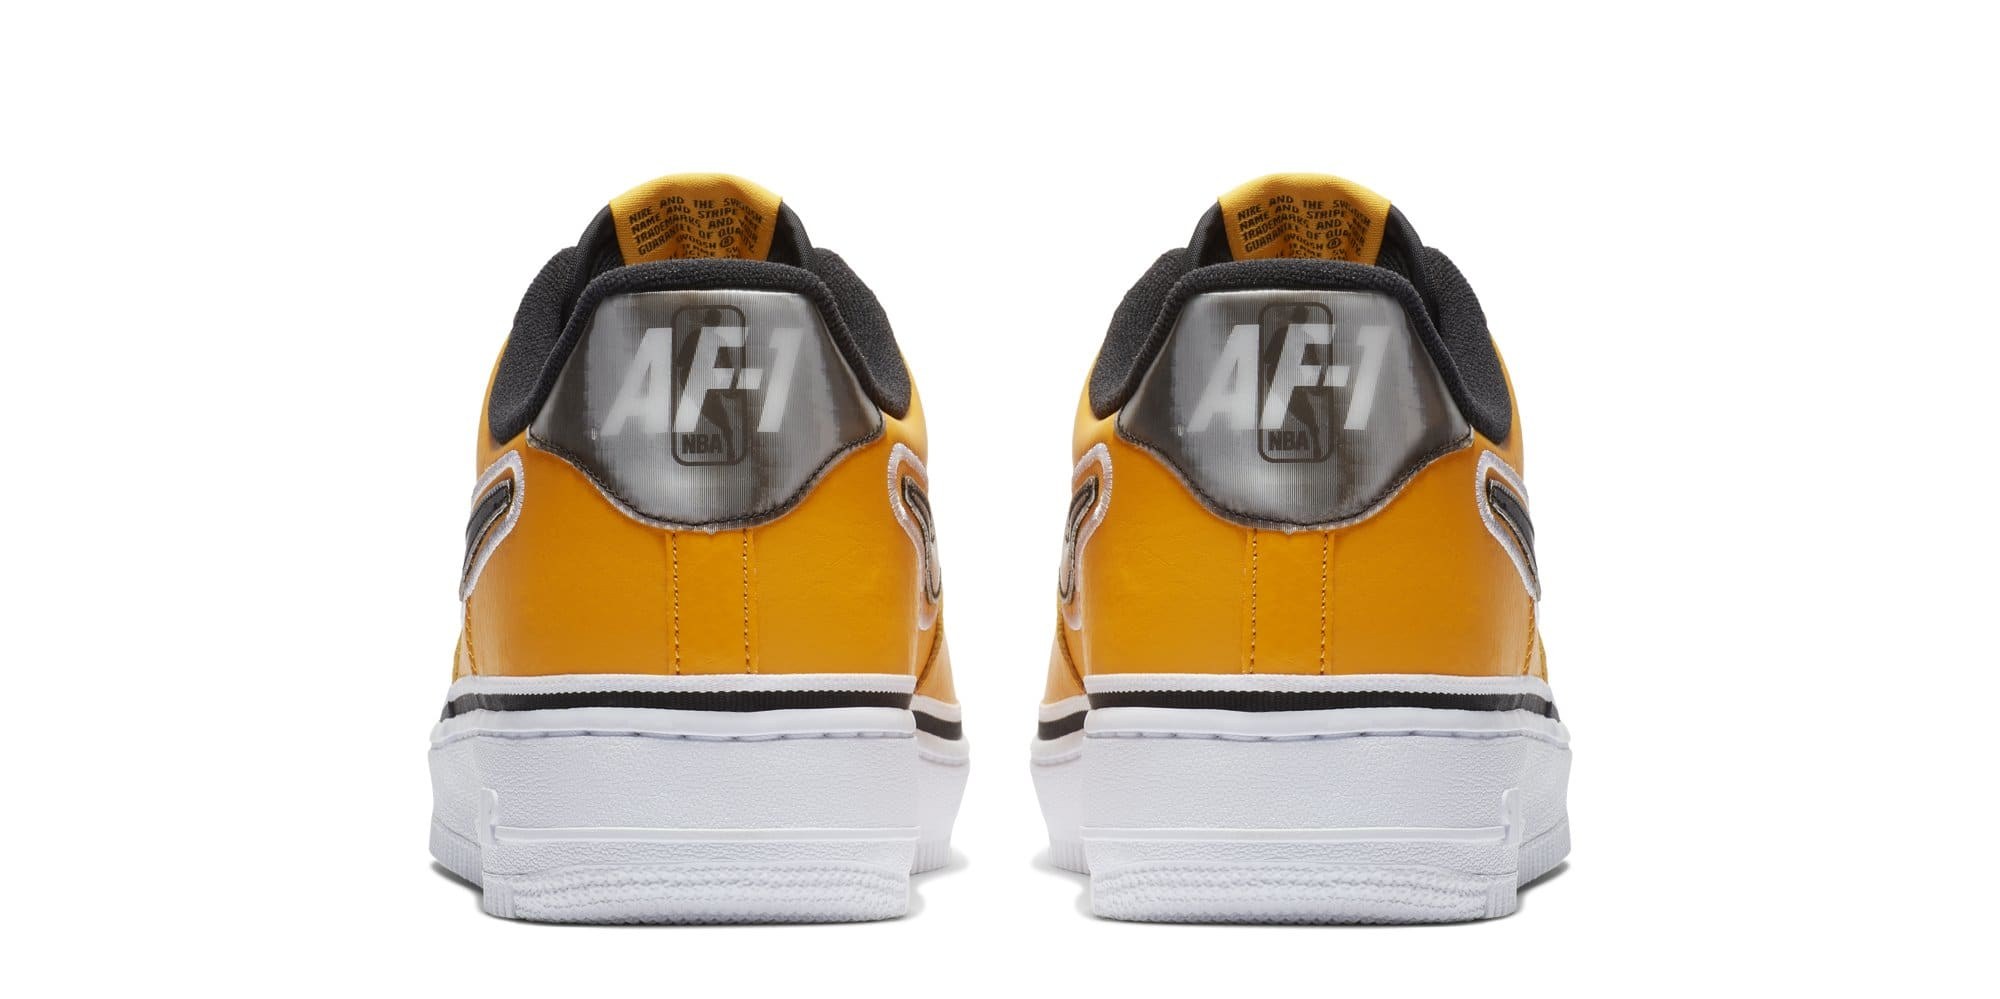 newest 97aec ff8b2 ... coupon for image via nike nba x nike air force 1 low lakers bv1168 700  heel